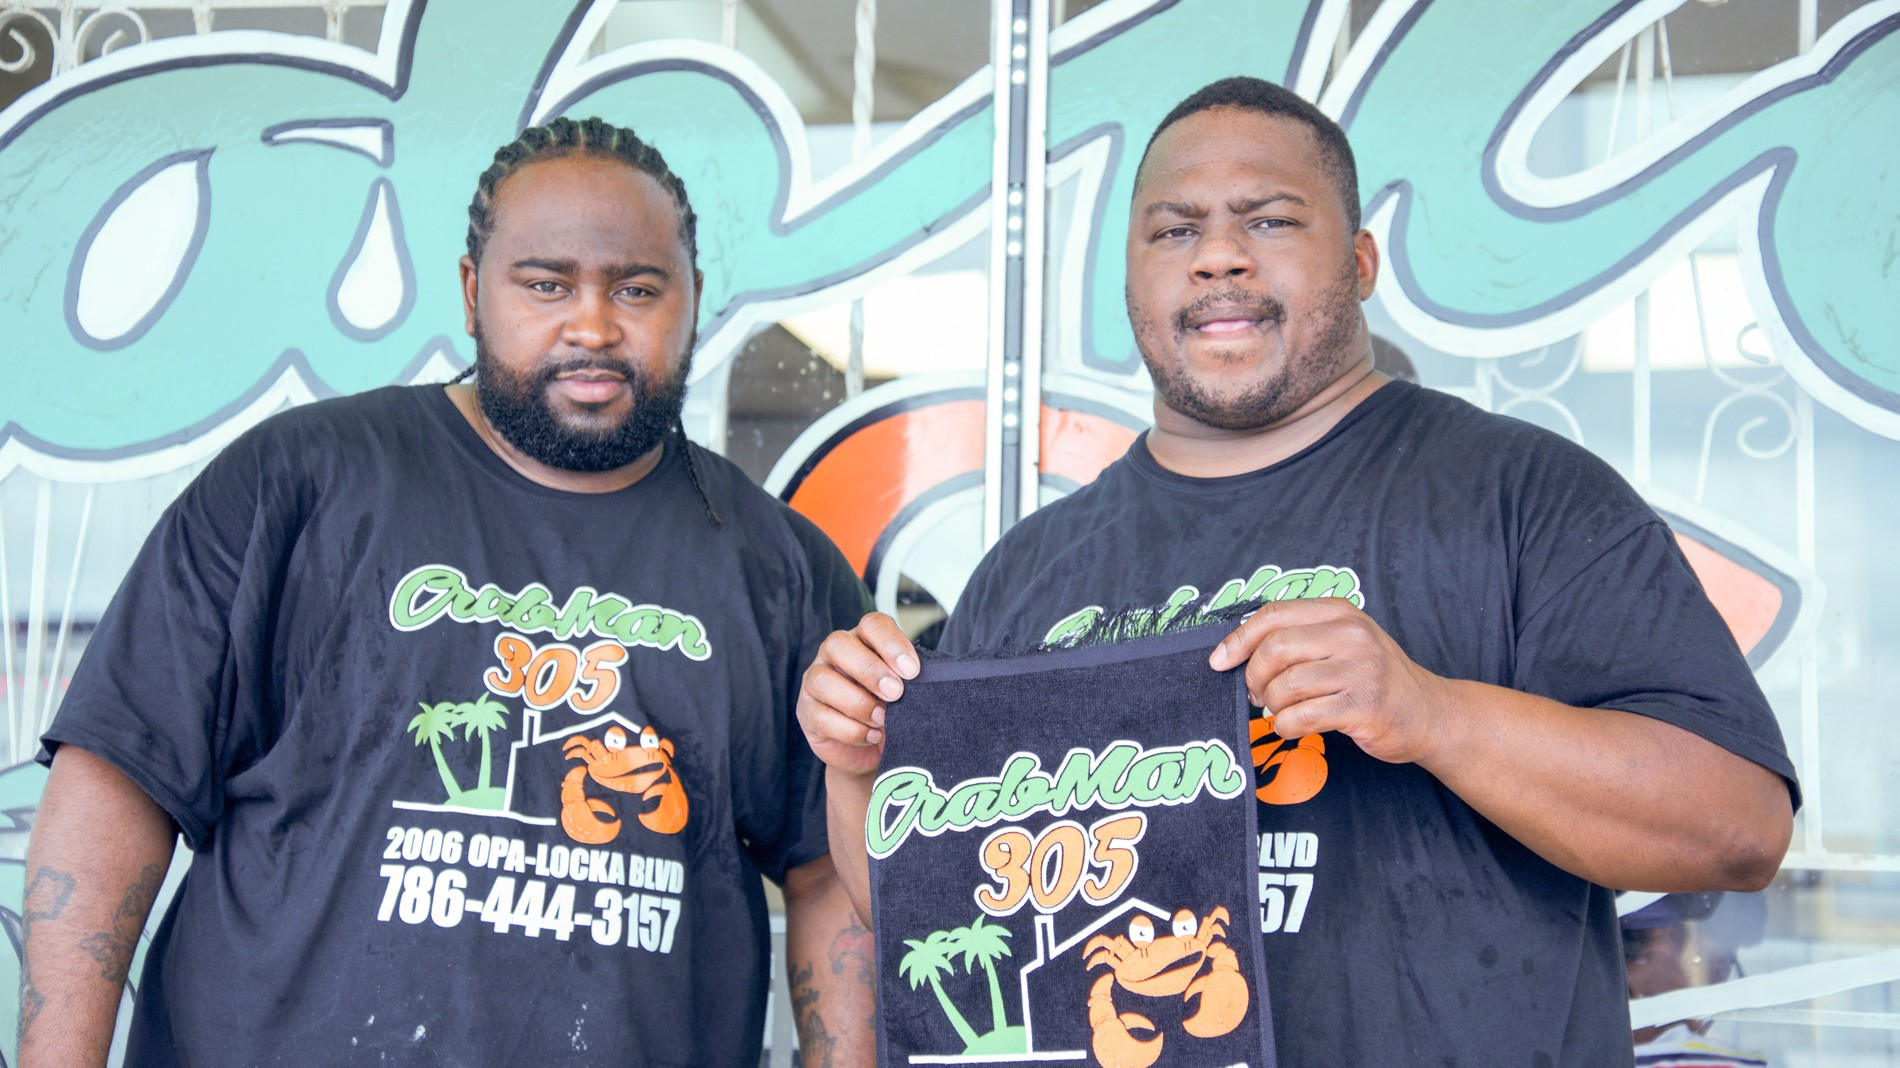 Crabman 305 Darren and Johnny store front